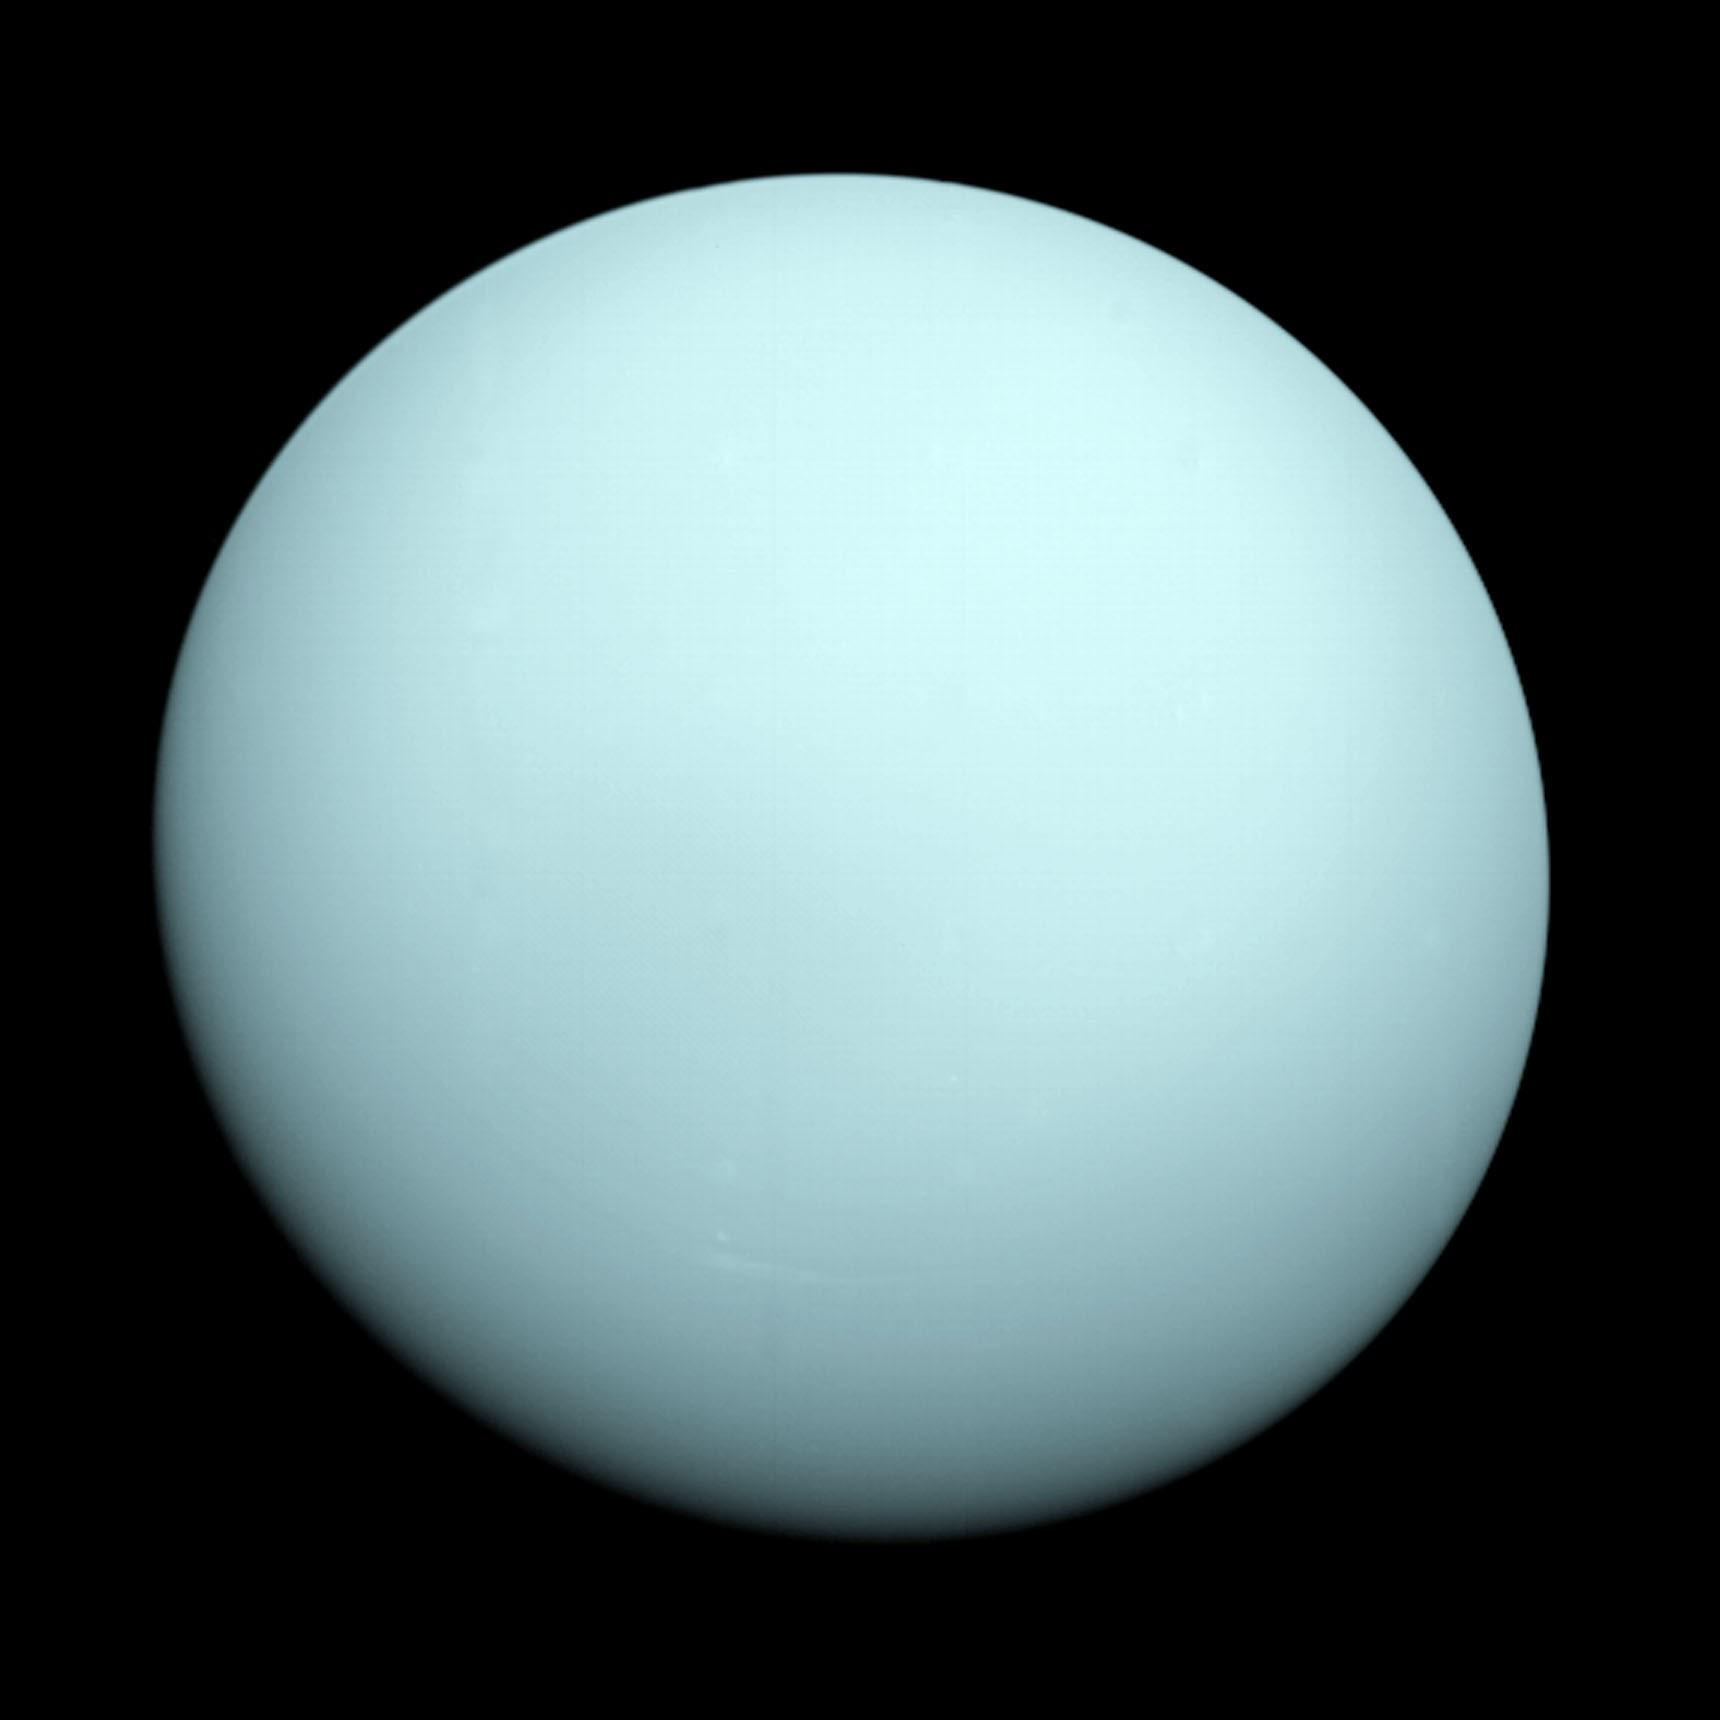 nasa photos of uranus - photo #5